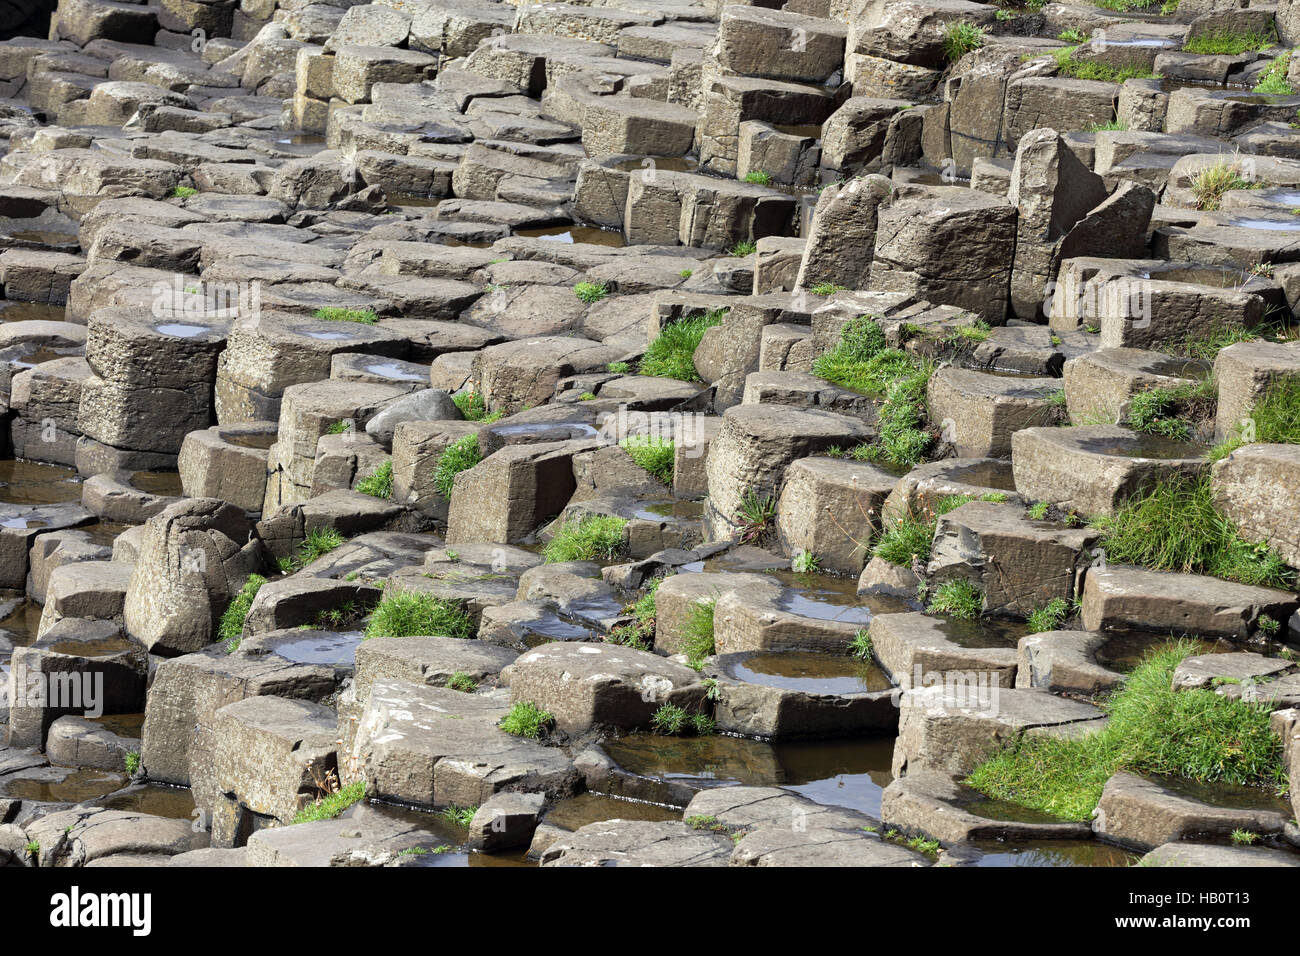 Basalt colums of Giant's Causeway, Ulster GB - Stock Image